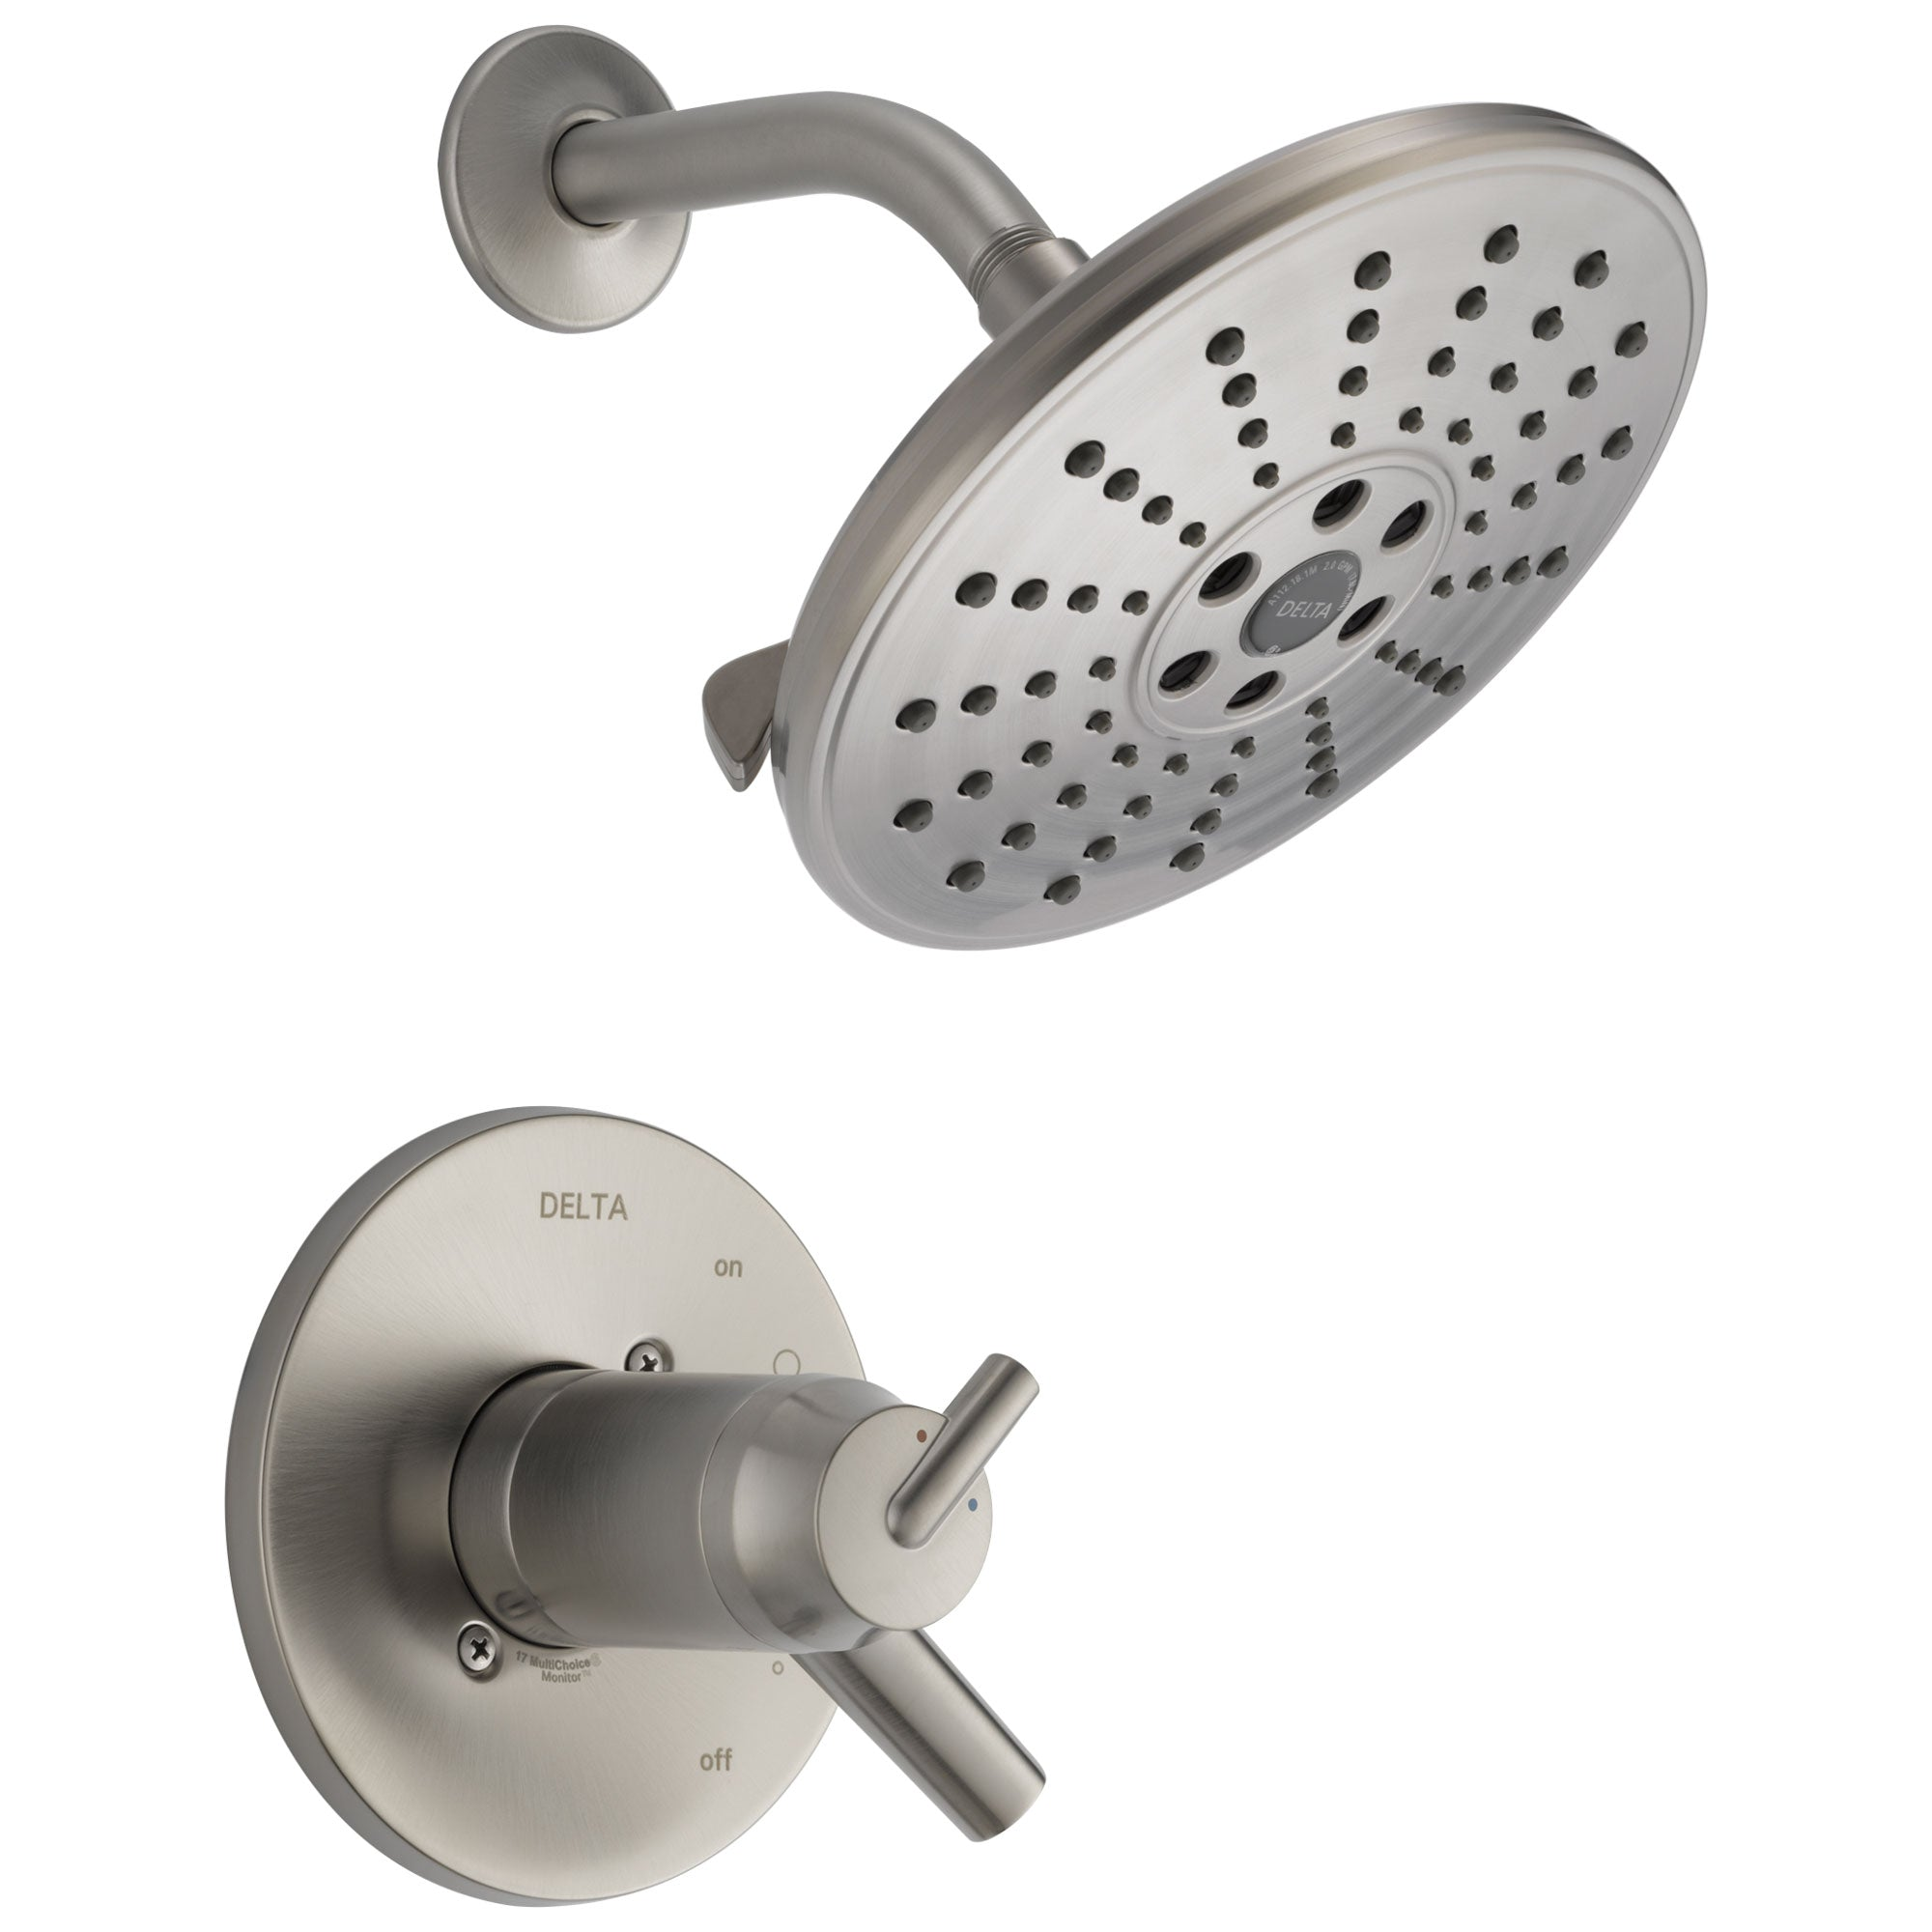 Delta Trinsic Collection Stainless Steel Finish Thermostatic Temperature / Pressure Control Shower Only Faucet Includes Rough-in Valve without Stops D2247V